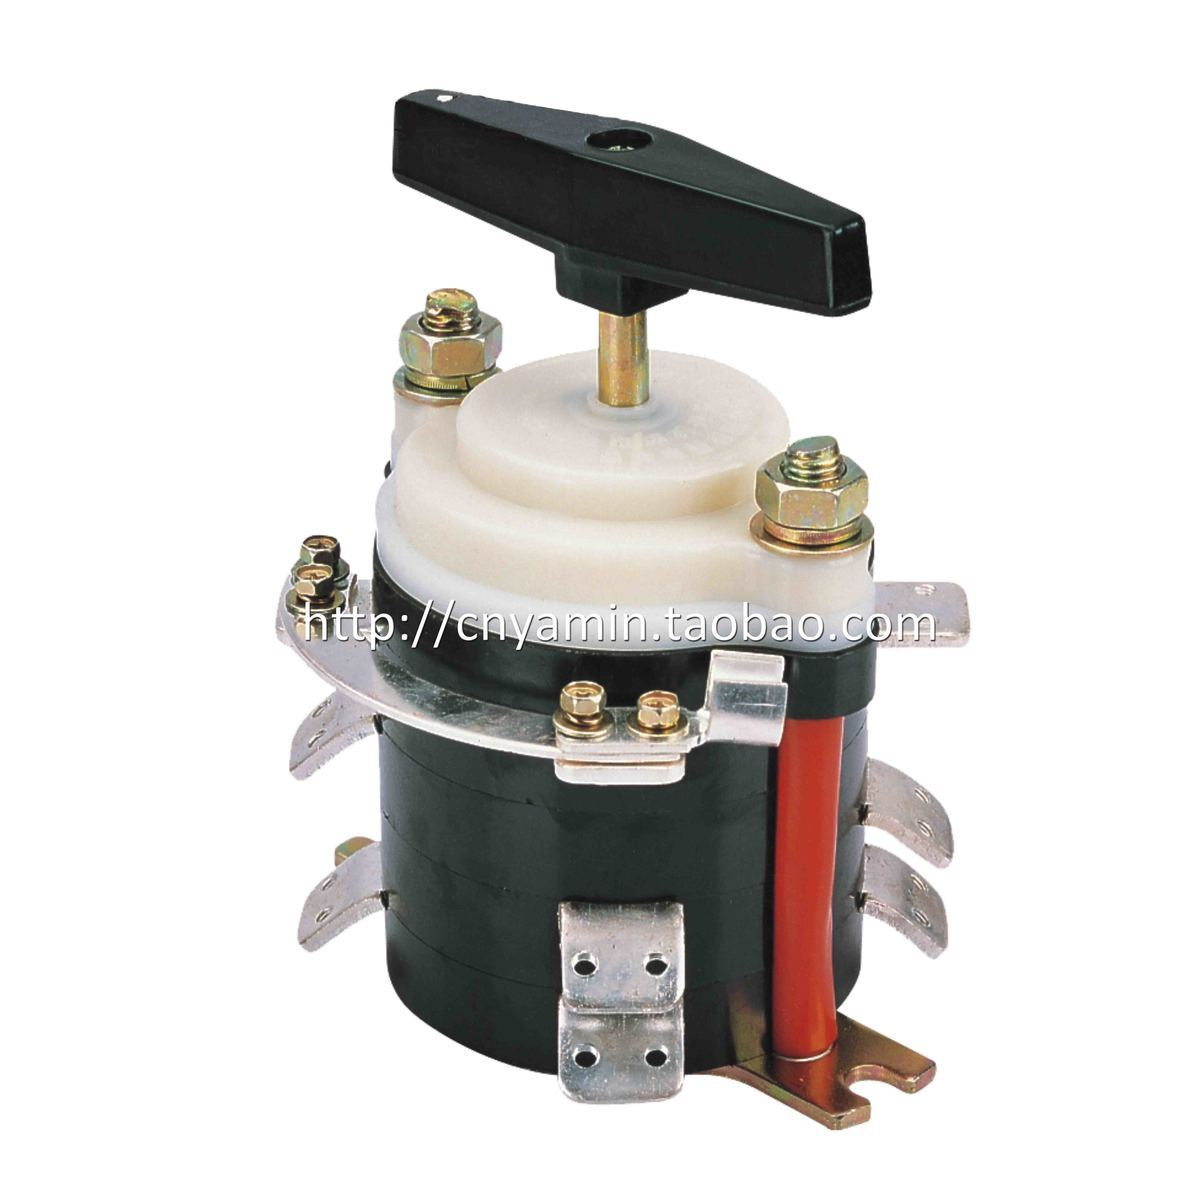 KDH-200A Welding Machine Switch BX3-500 Will Current Rotating Knob 4 Layer 4 200 4 200 500